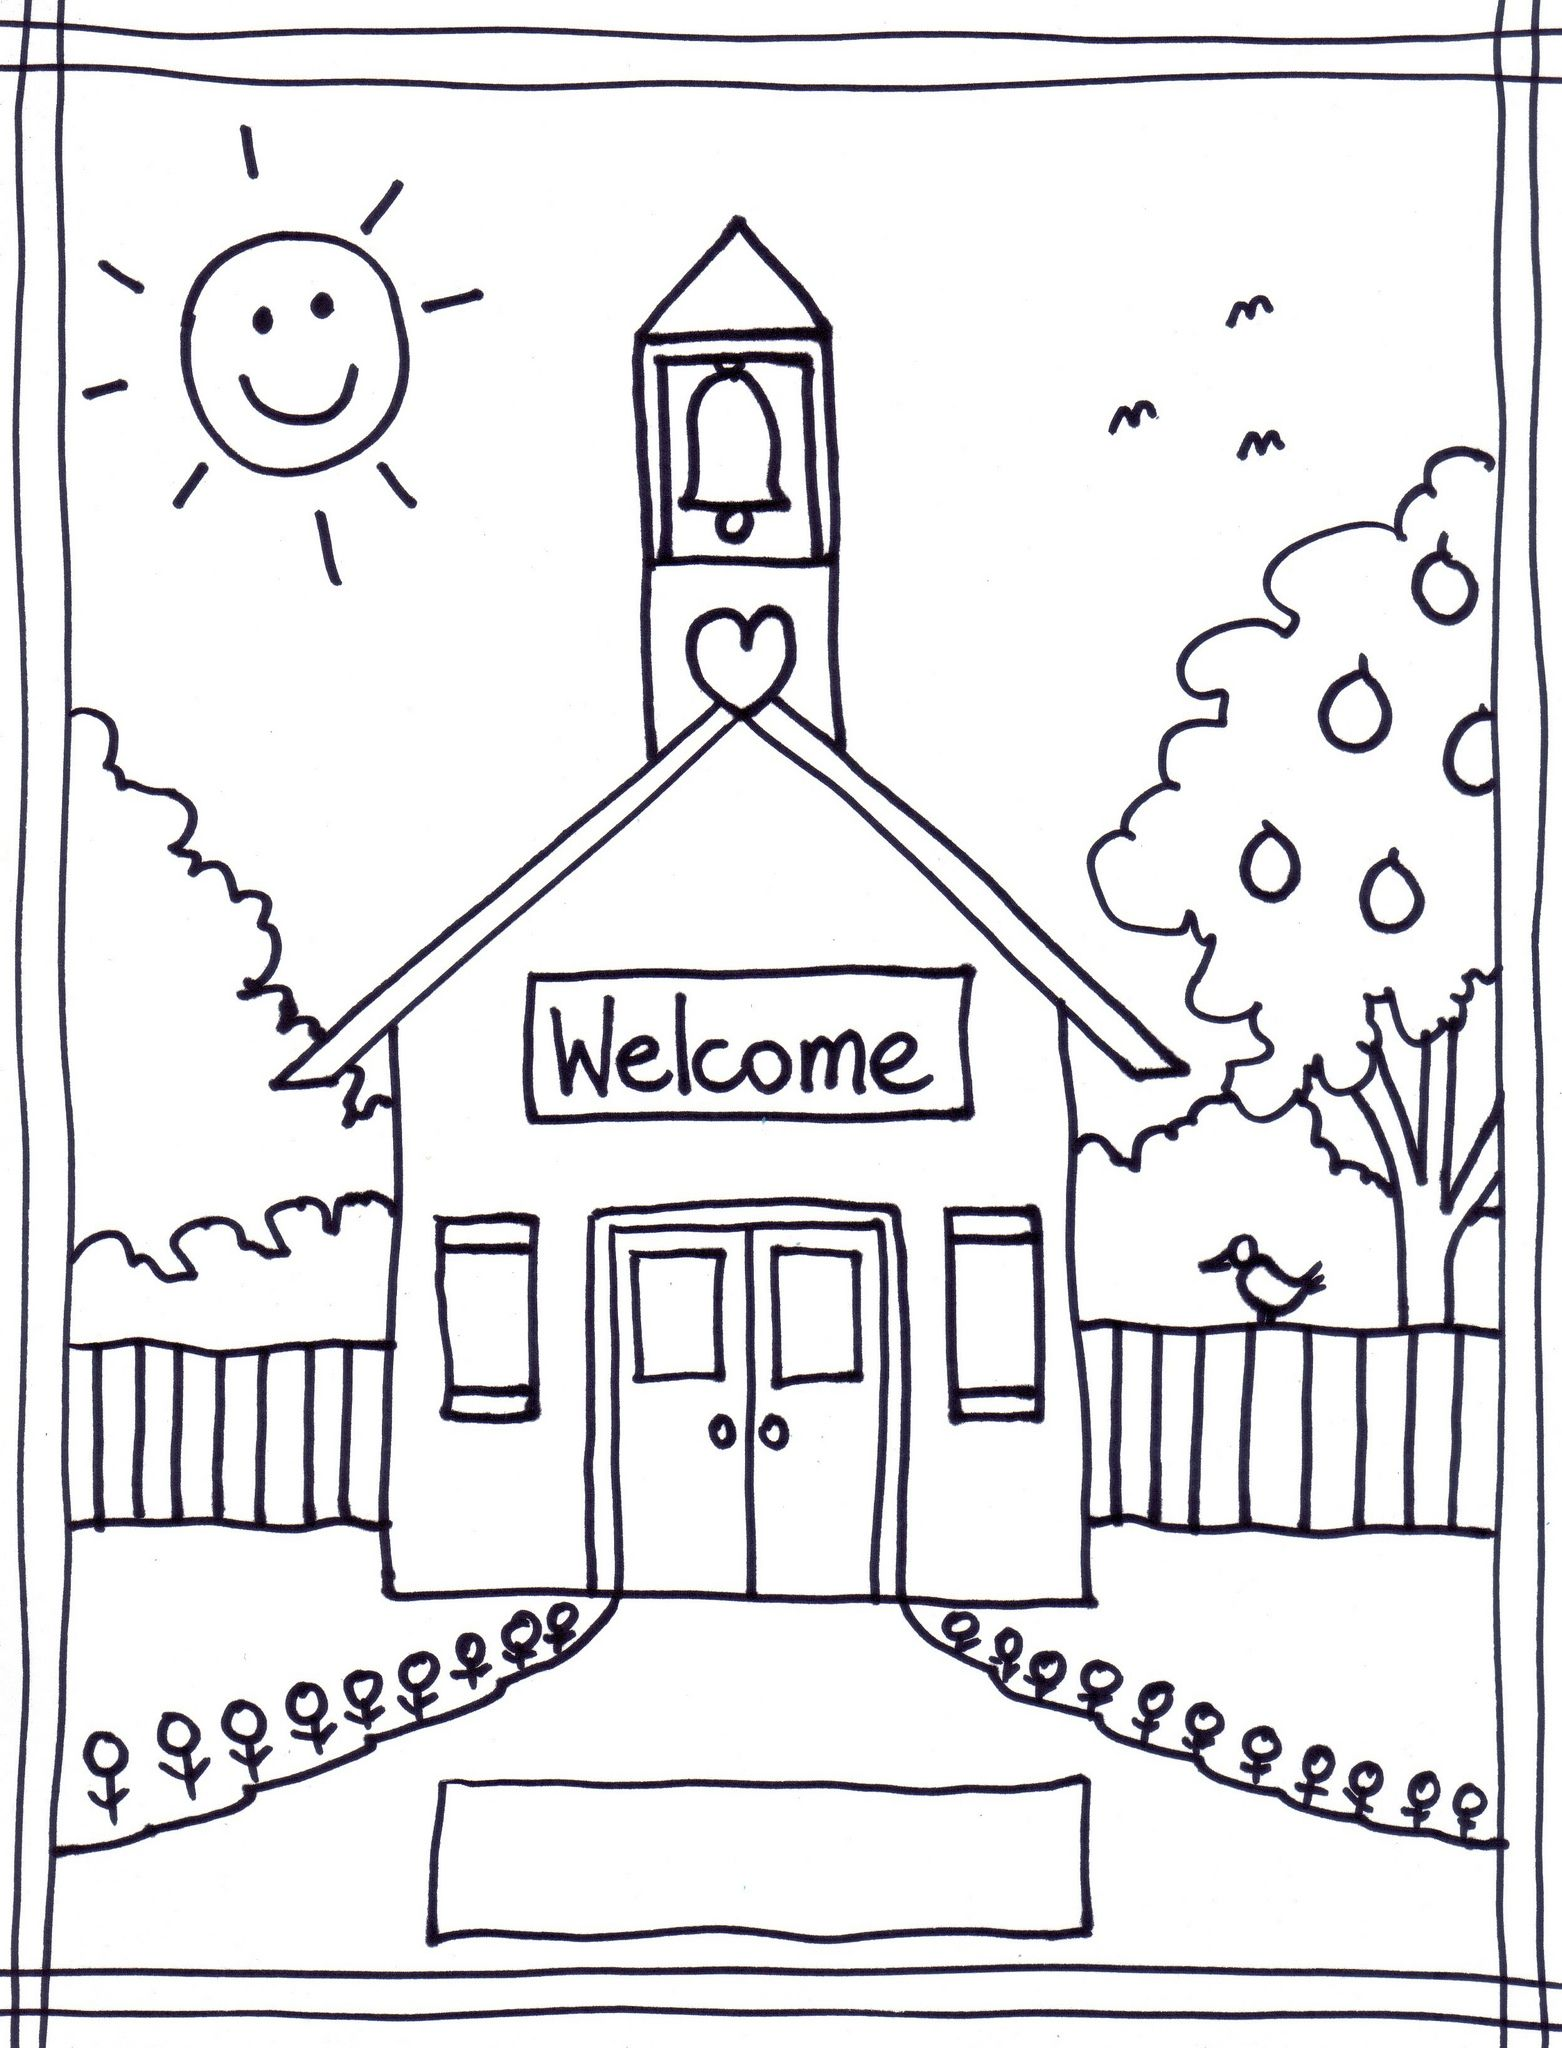 Back To School Coloring Pages Free Printables Image 22 Coloring Pages For Elementary School